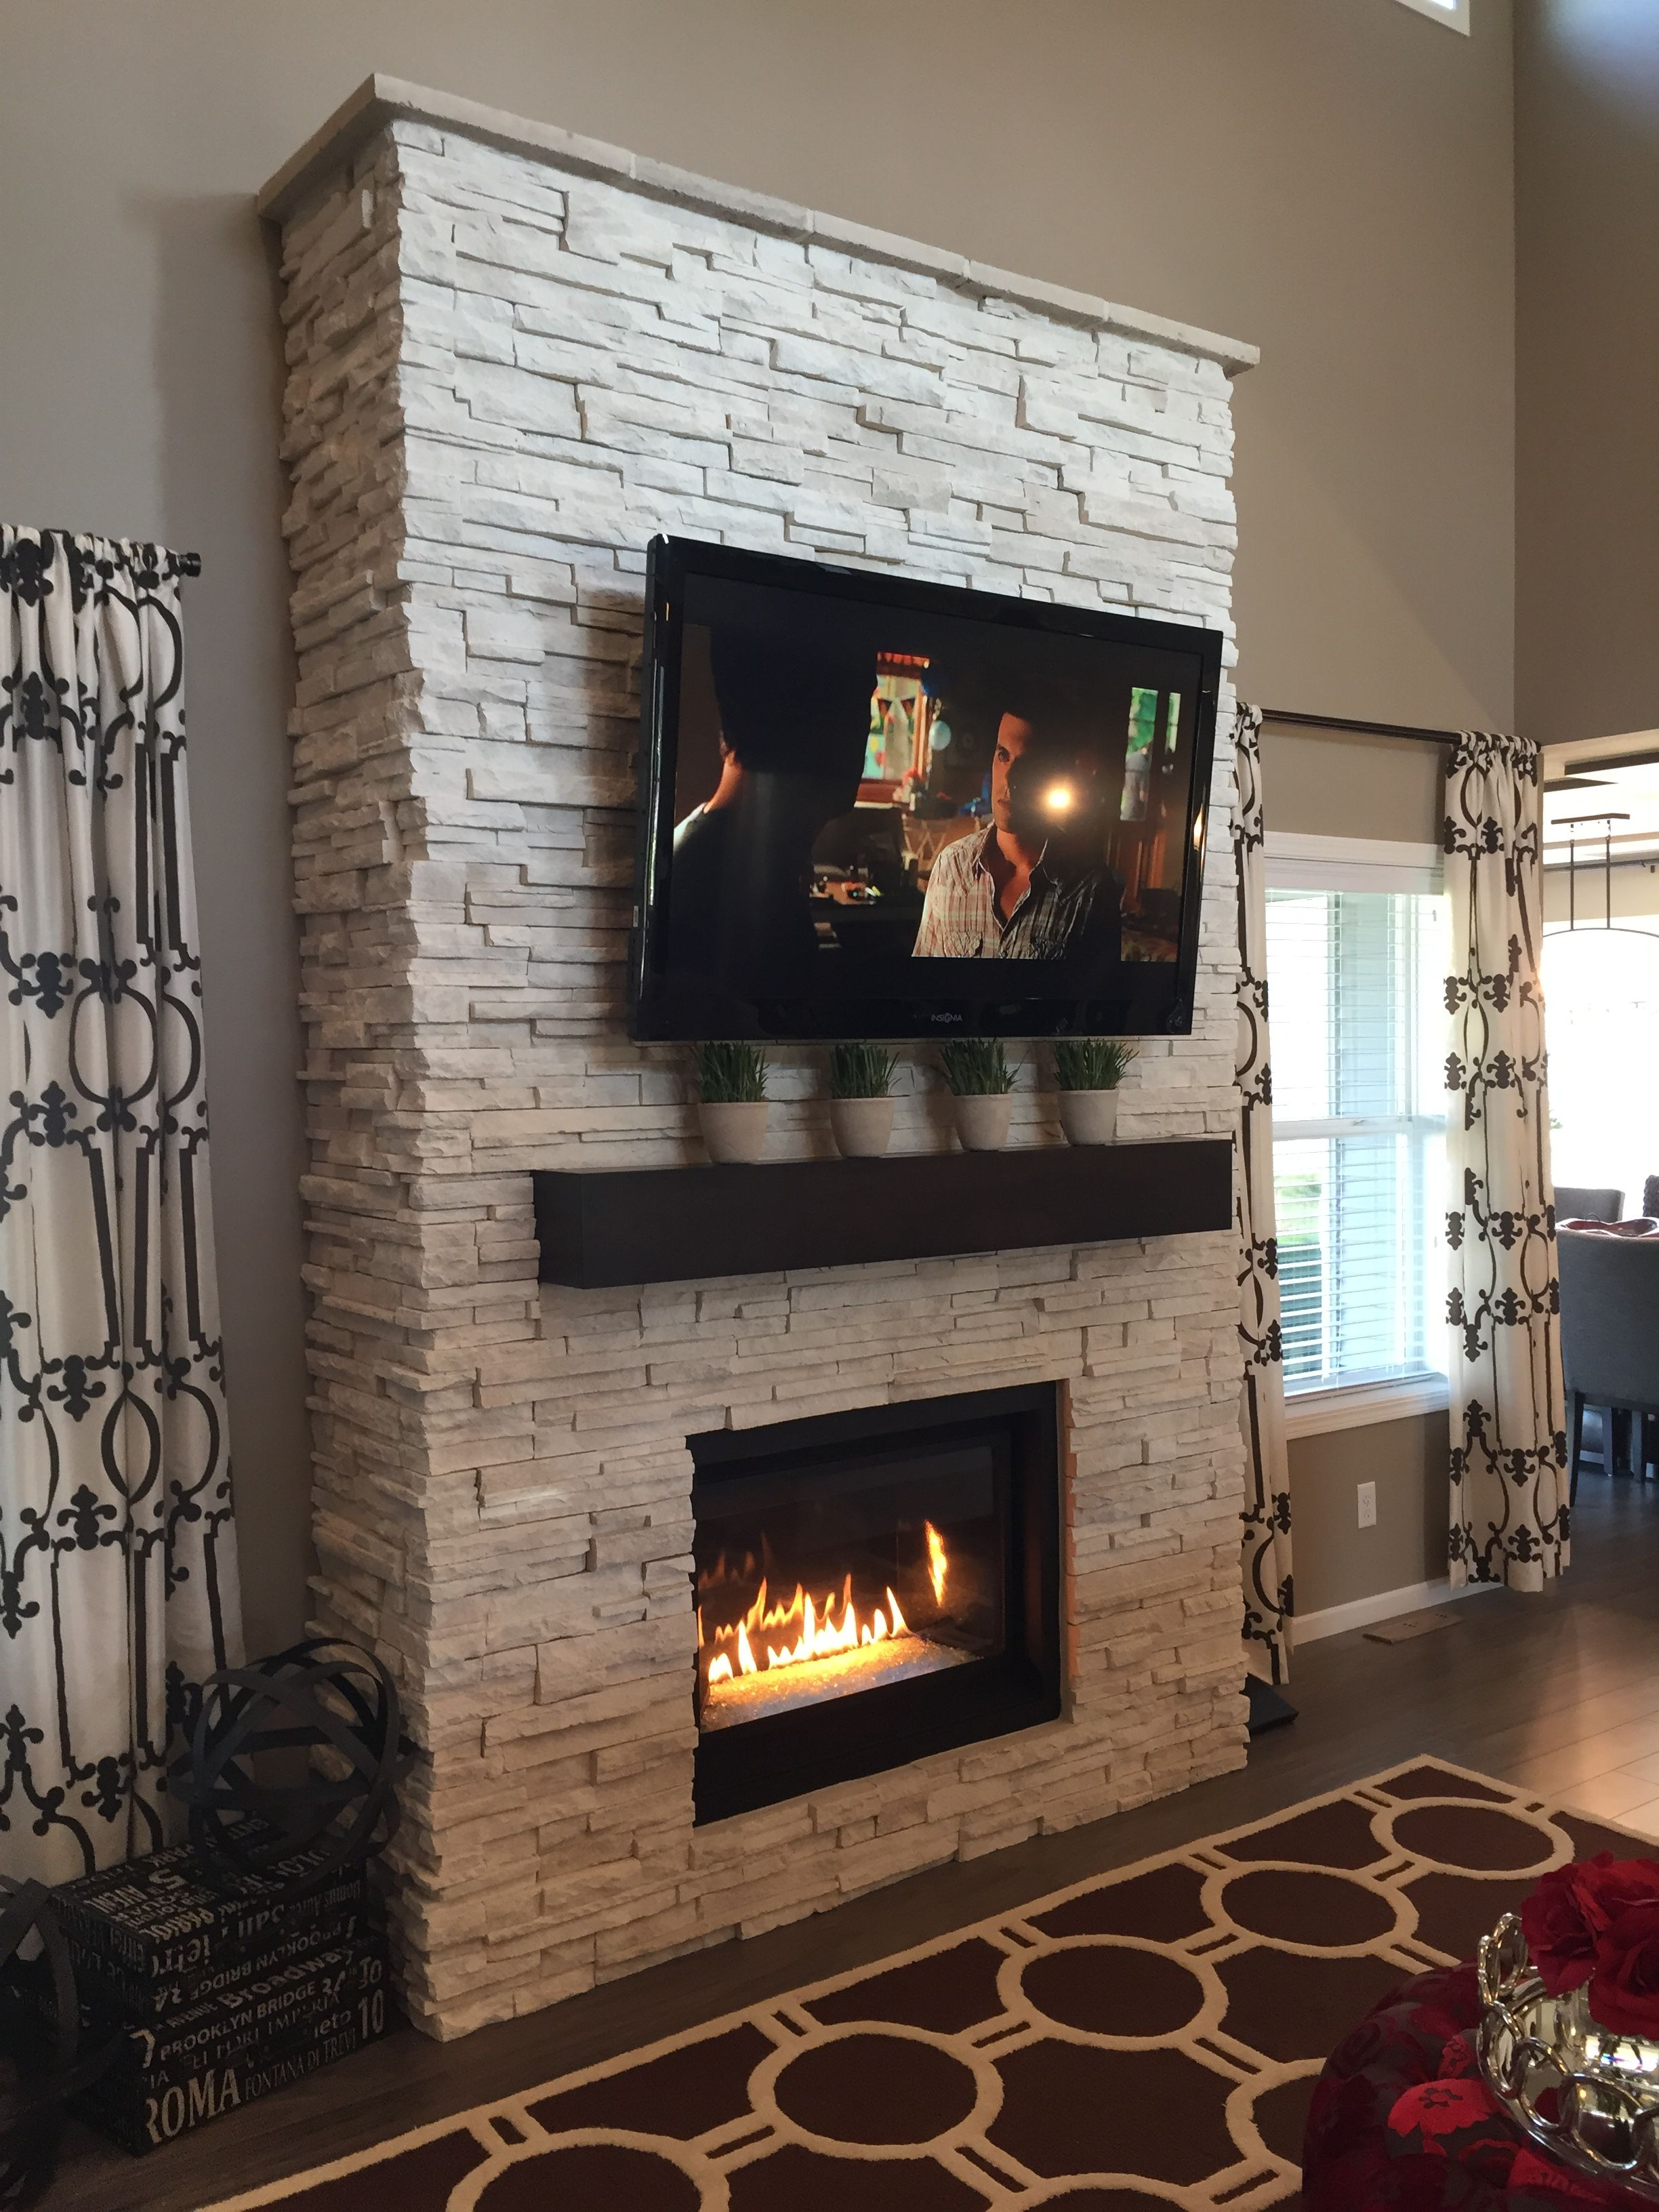 Pin By Kayla Larson On Dream Home In 2019 Fireplace